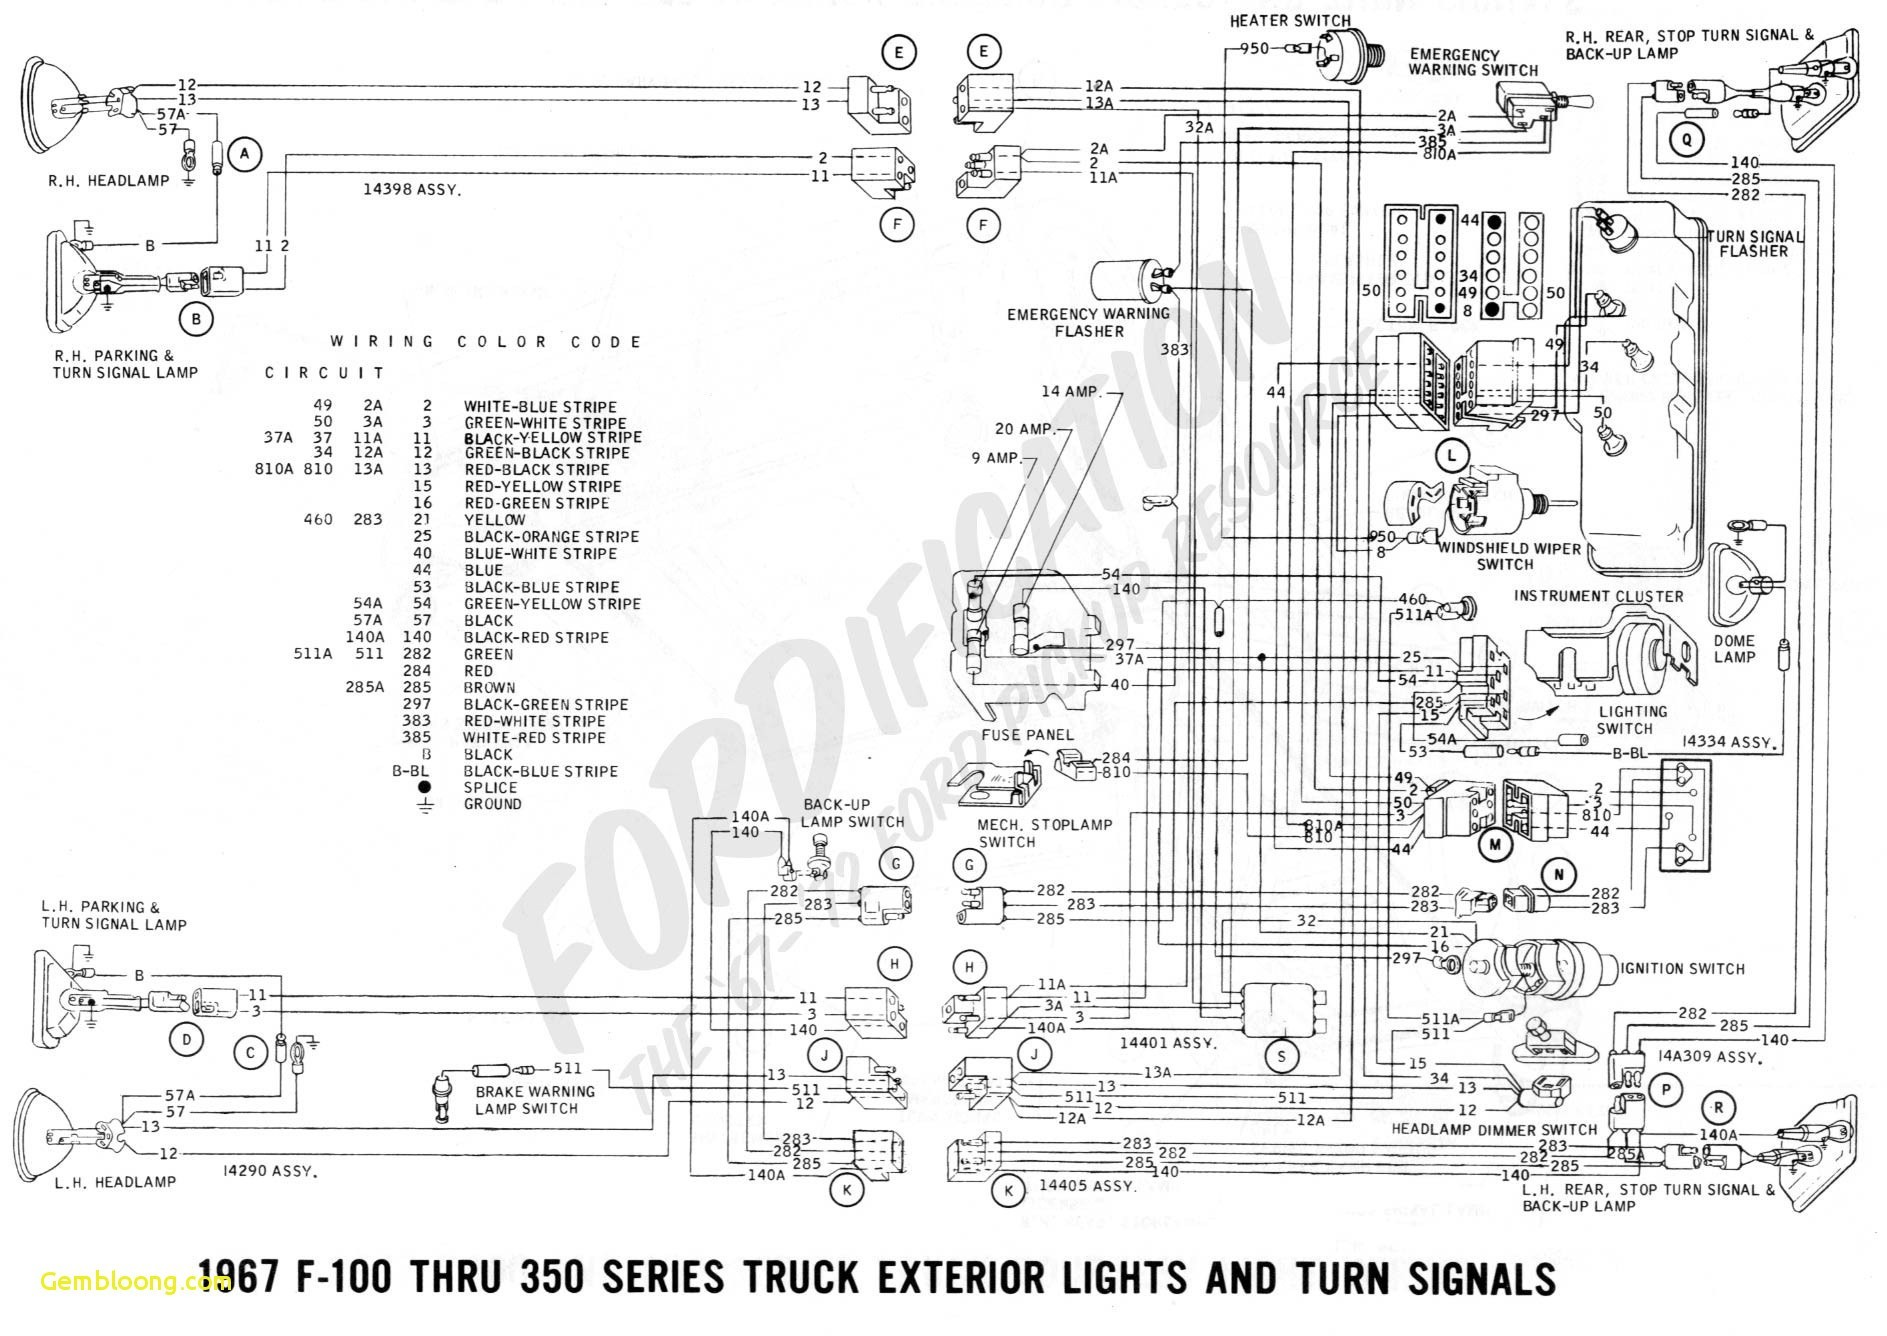 2004 ford Freestar Engine Diagram ford Pats Wiring Diagram B Of 2004 ford Freestar Engine Diagram